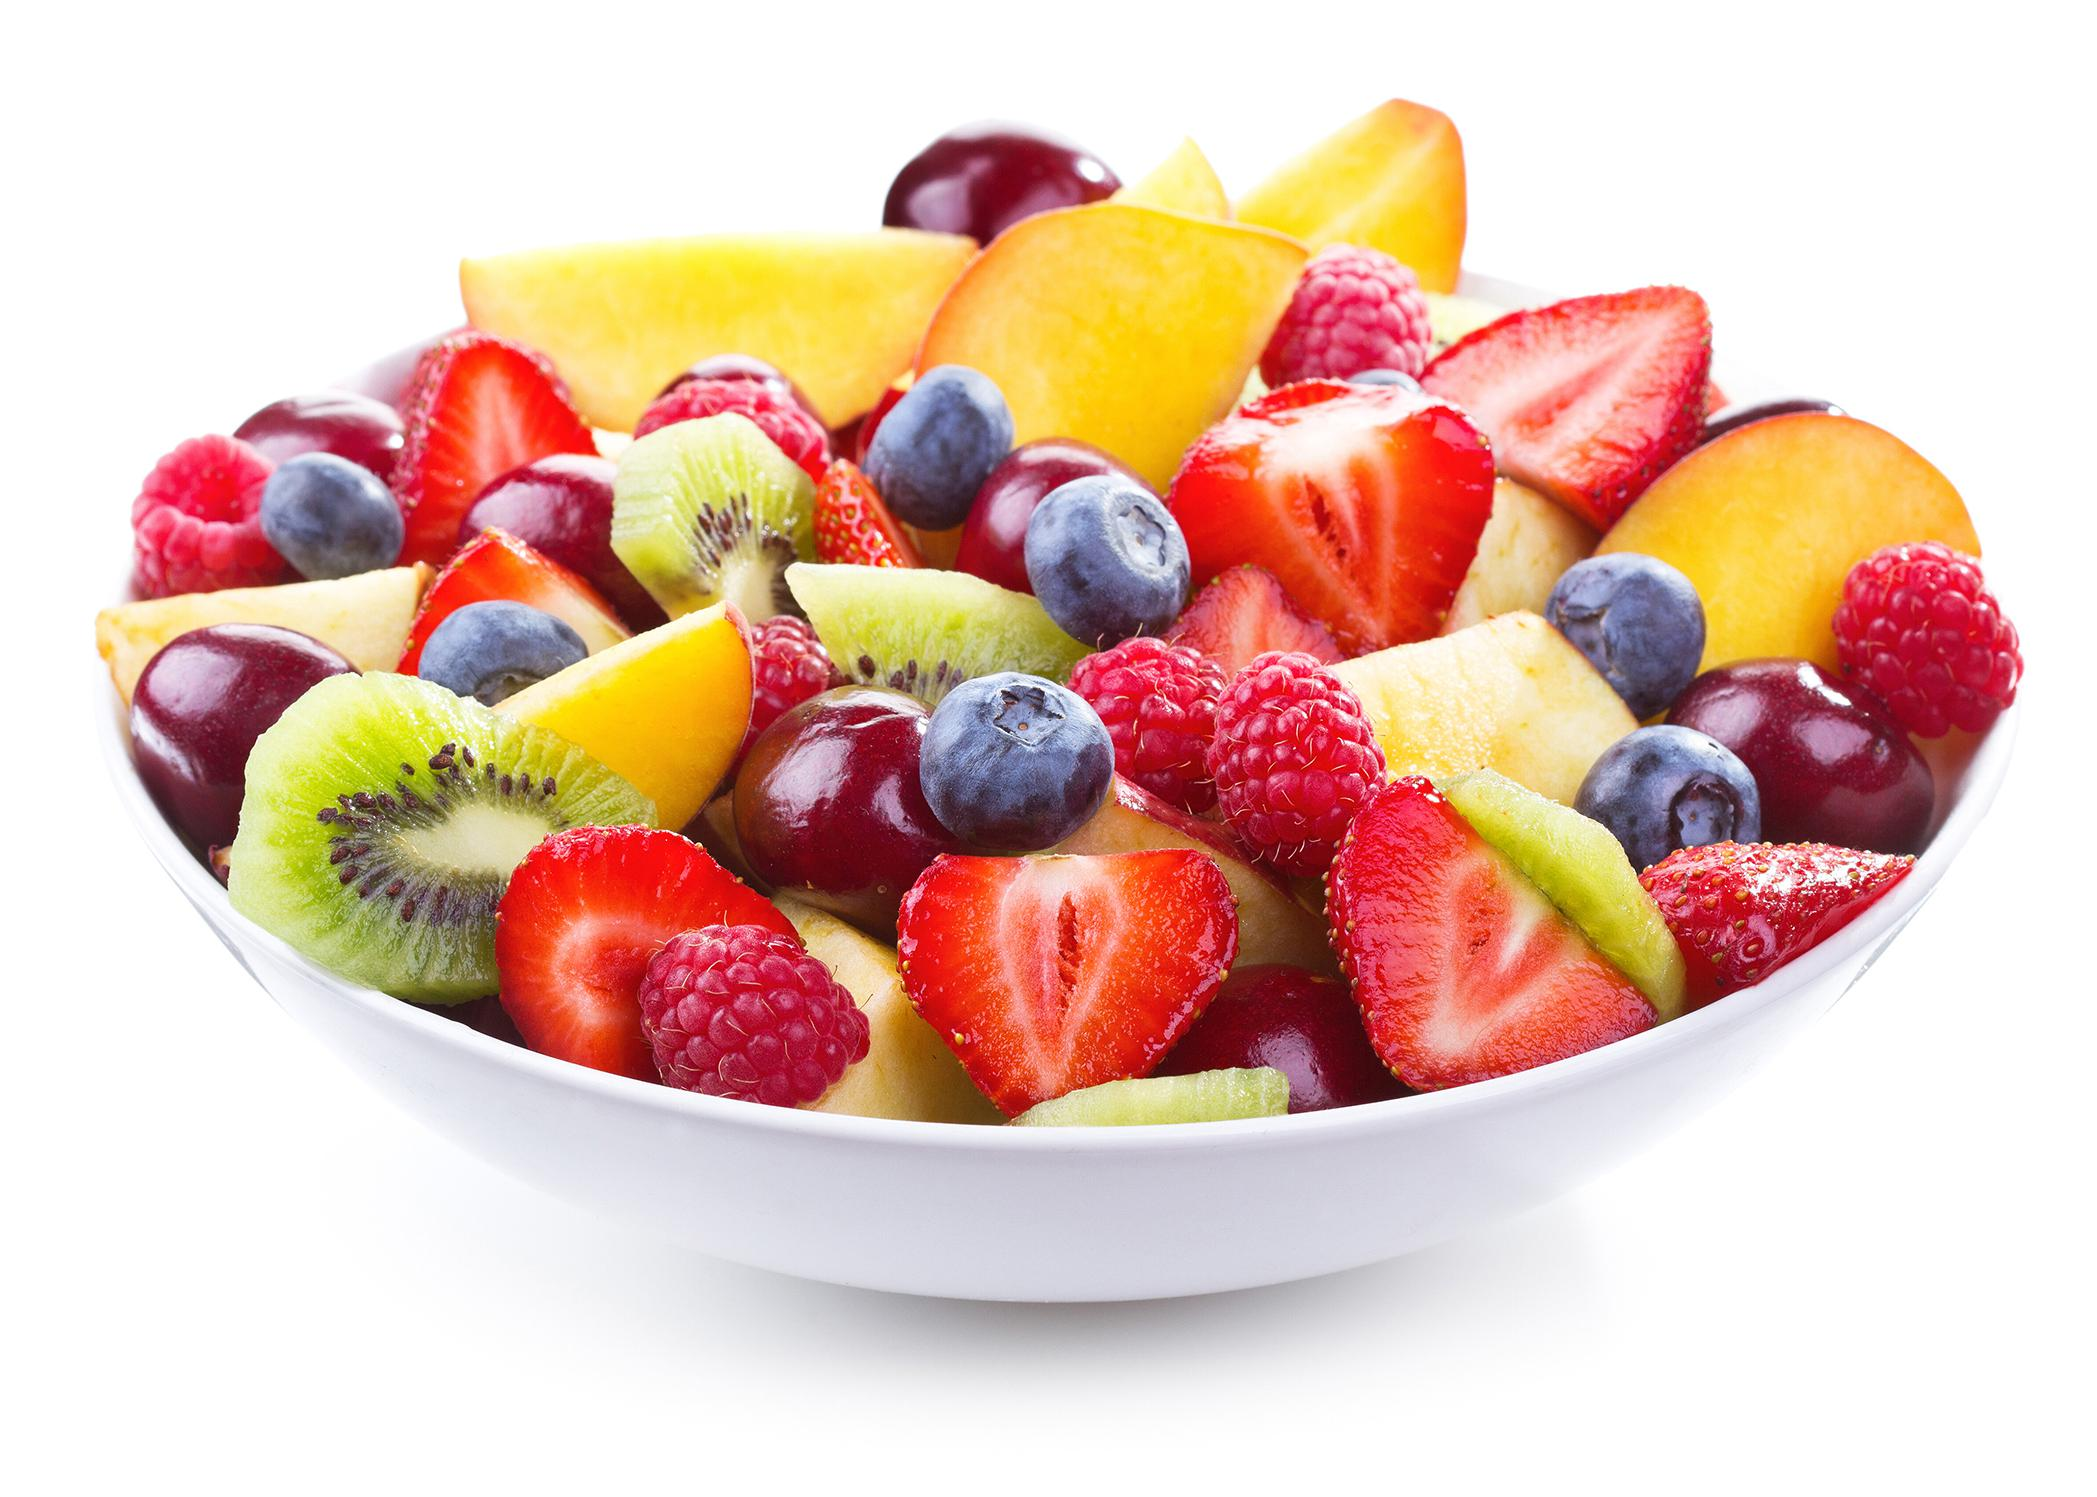 A bowl of various fruits